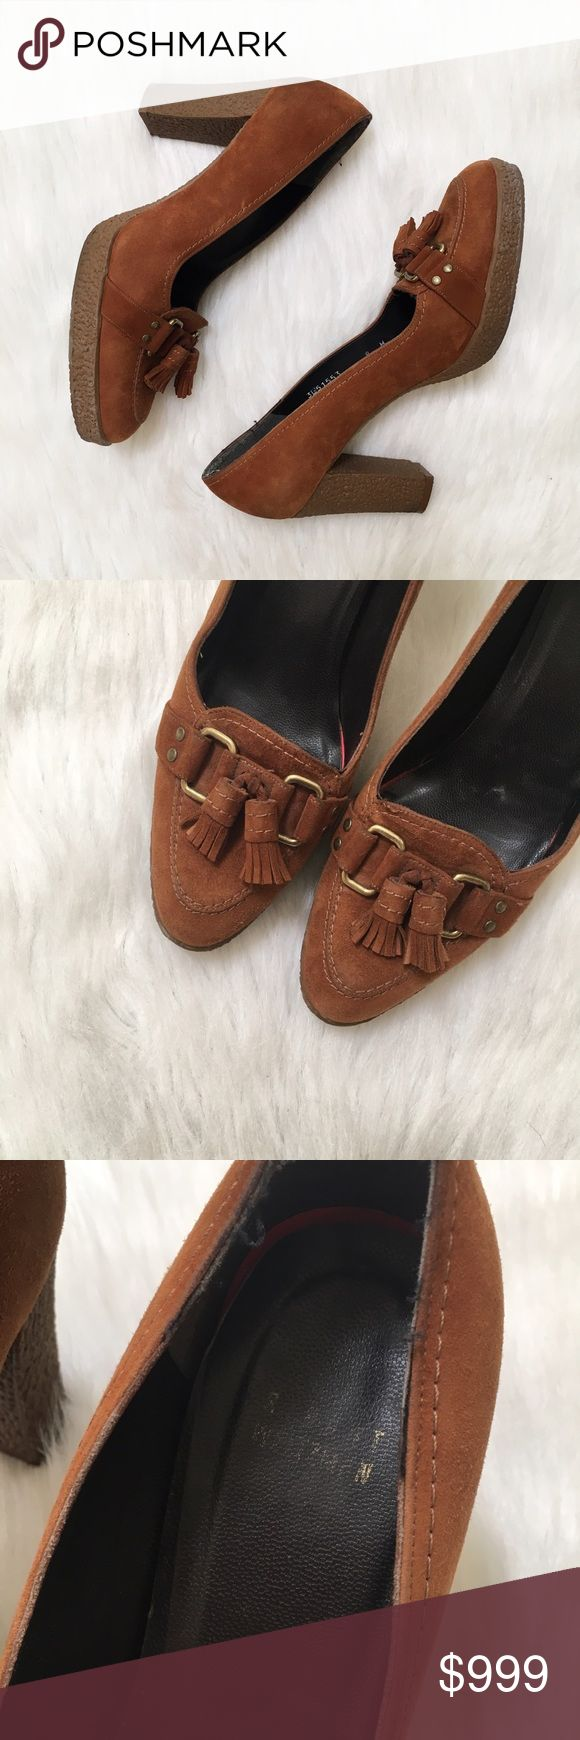 "Stuart Weitzman Suede Loafer Heels, Rubber Soles Cognac brown suede loafer style heels with tassels for extra class. The heel measures approximately 3.5"" with a .75"" platform. The soles are rubber for extra comfort. Some wear to the back of the heels (pictured). Stuart Weitzman Shoes Heels"